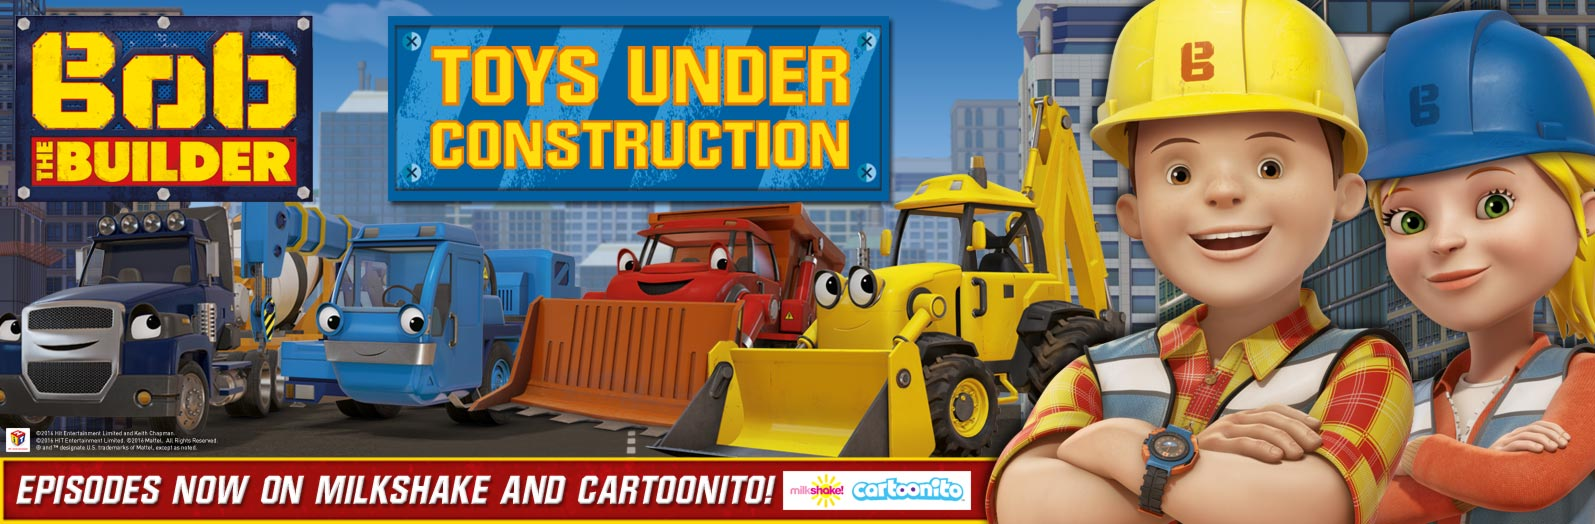 New Bob The Builder Toys will be soon available at Smyths Toys Superstores